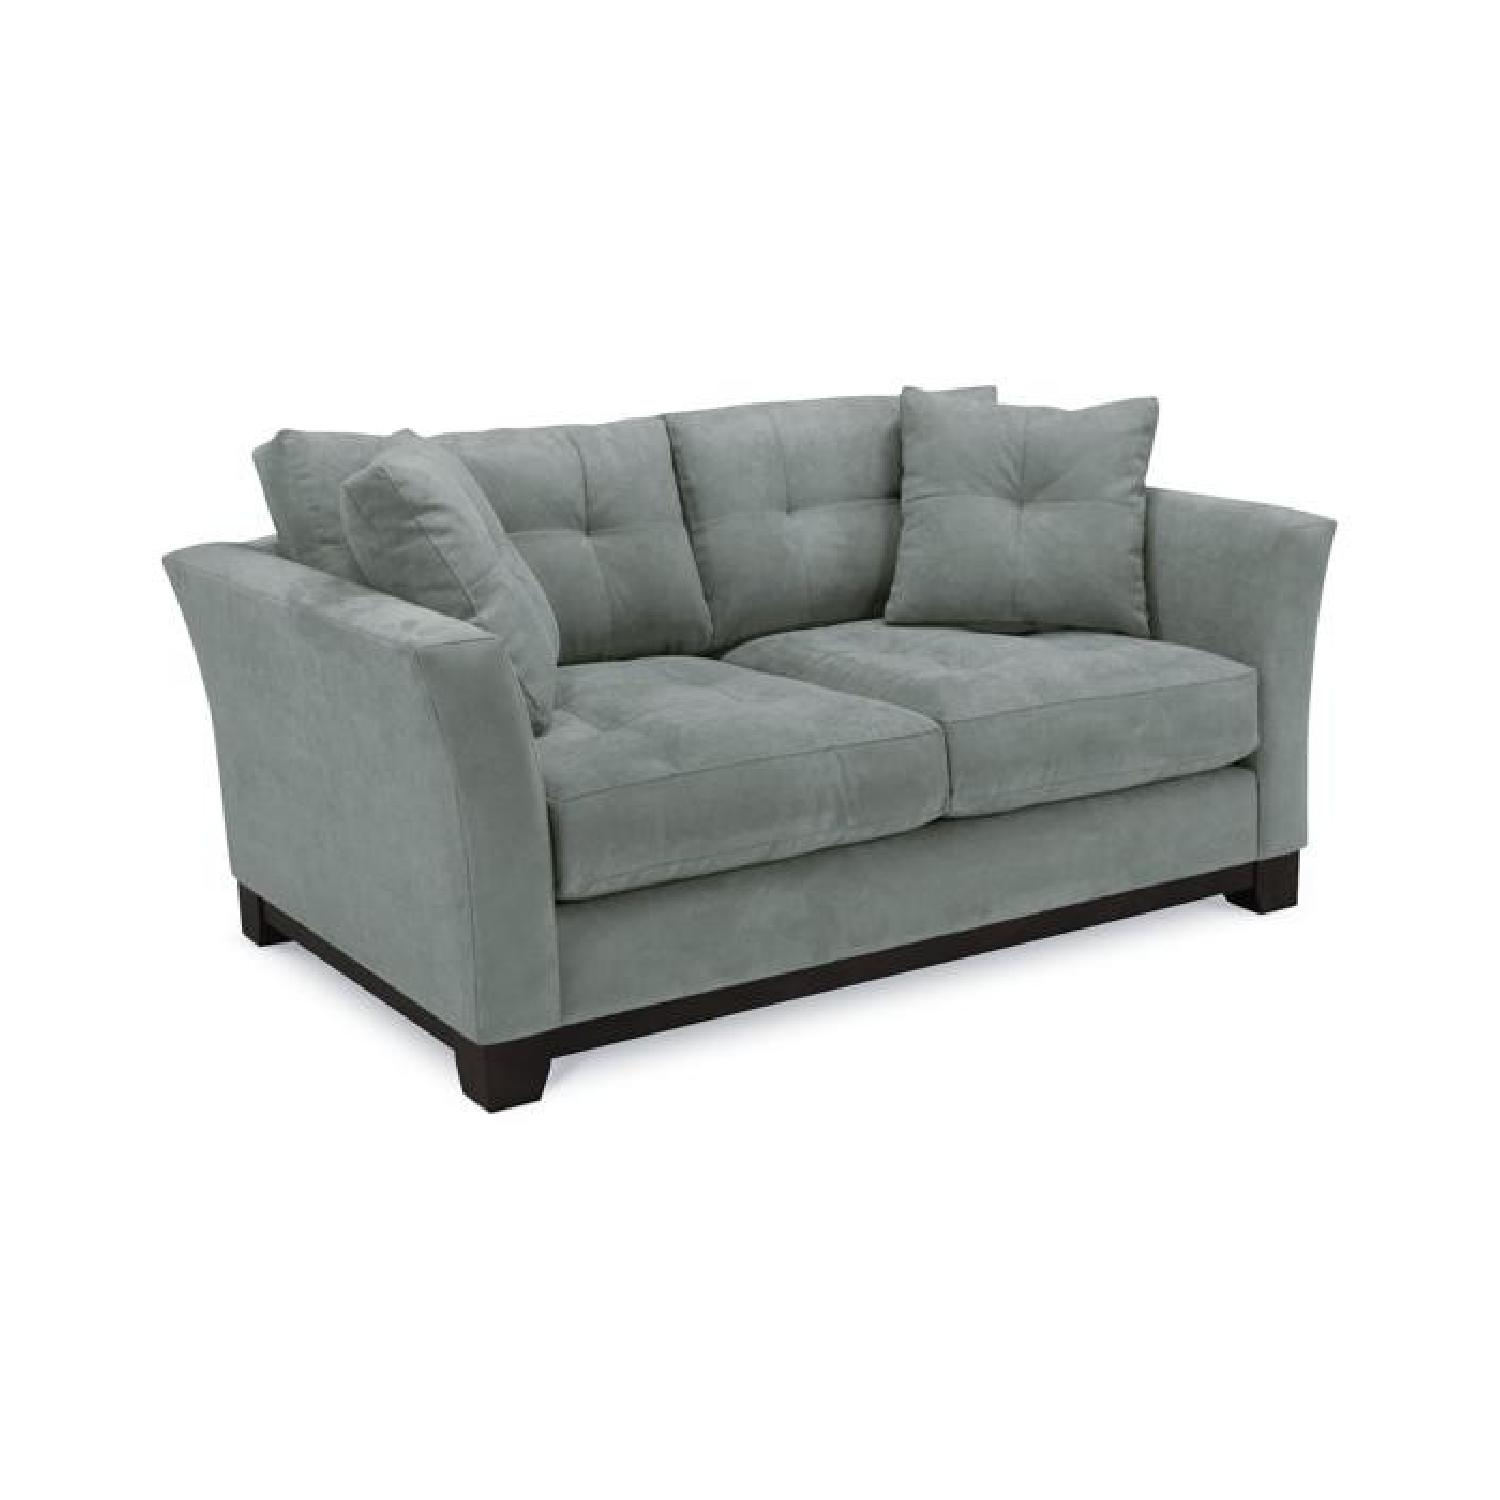 Macy's Grey Loveseat